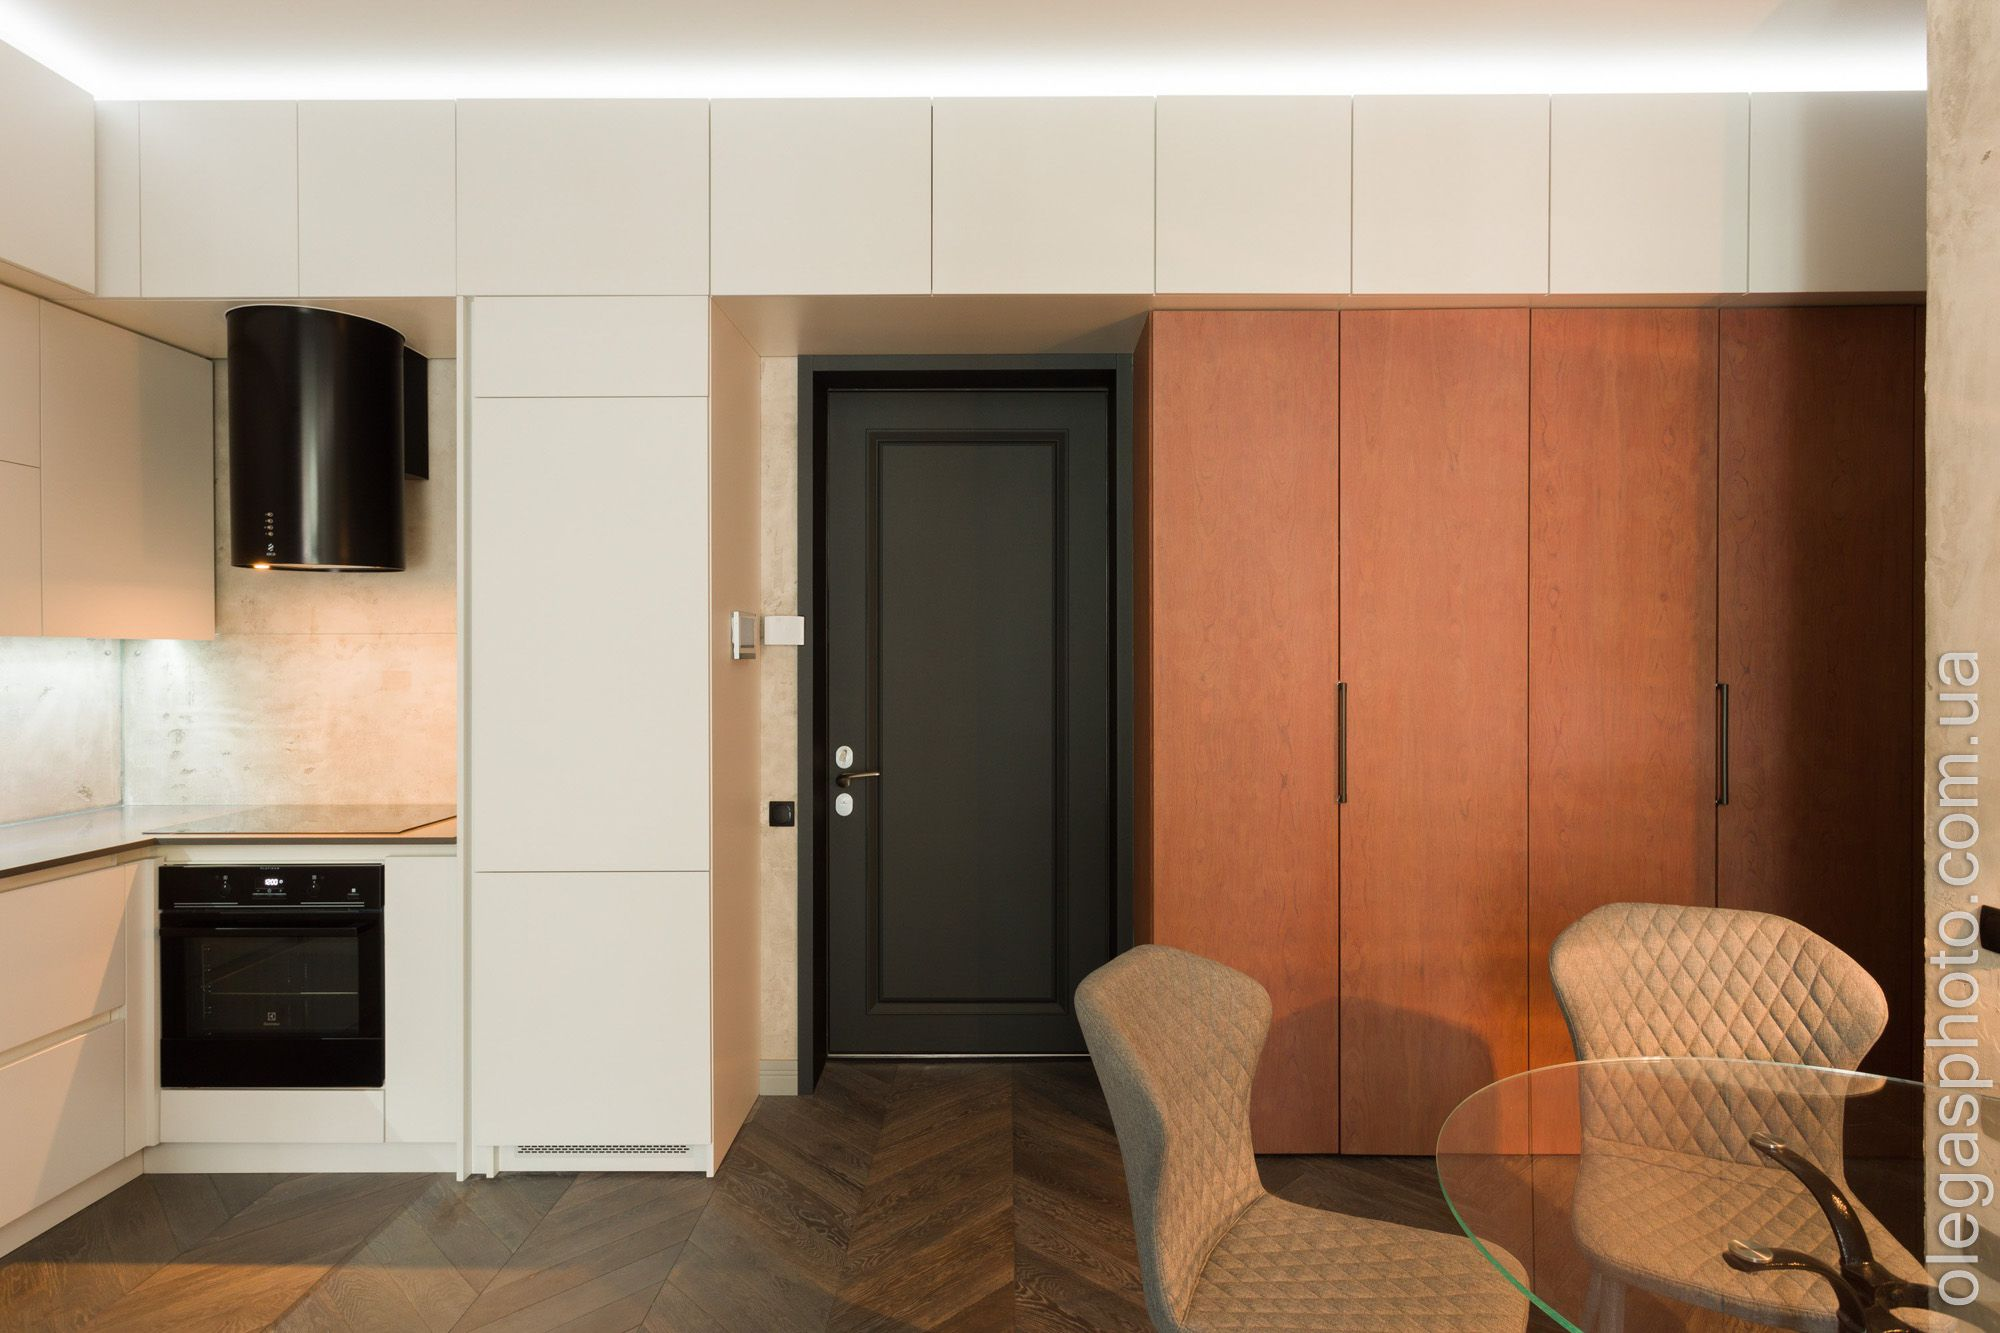 interior photography of an apartment in kiev